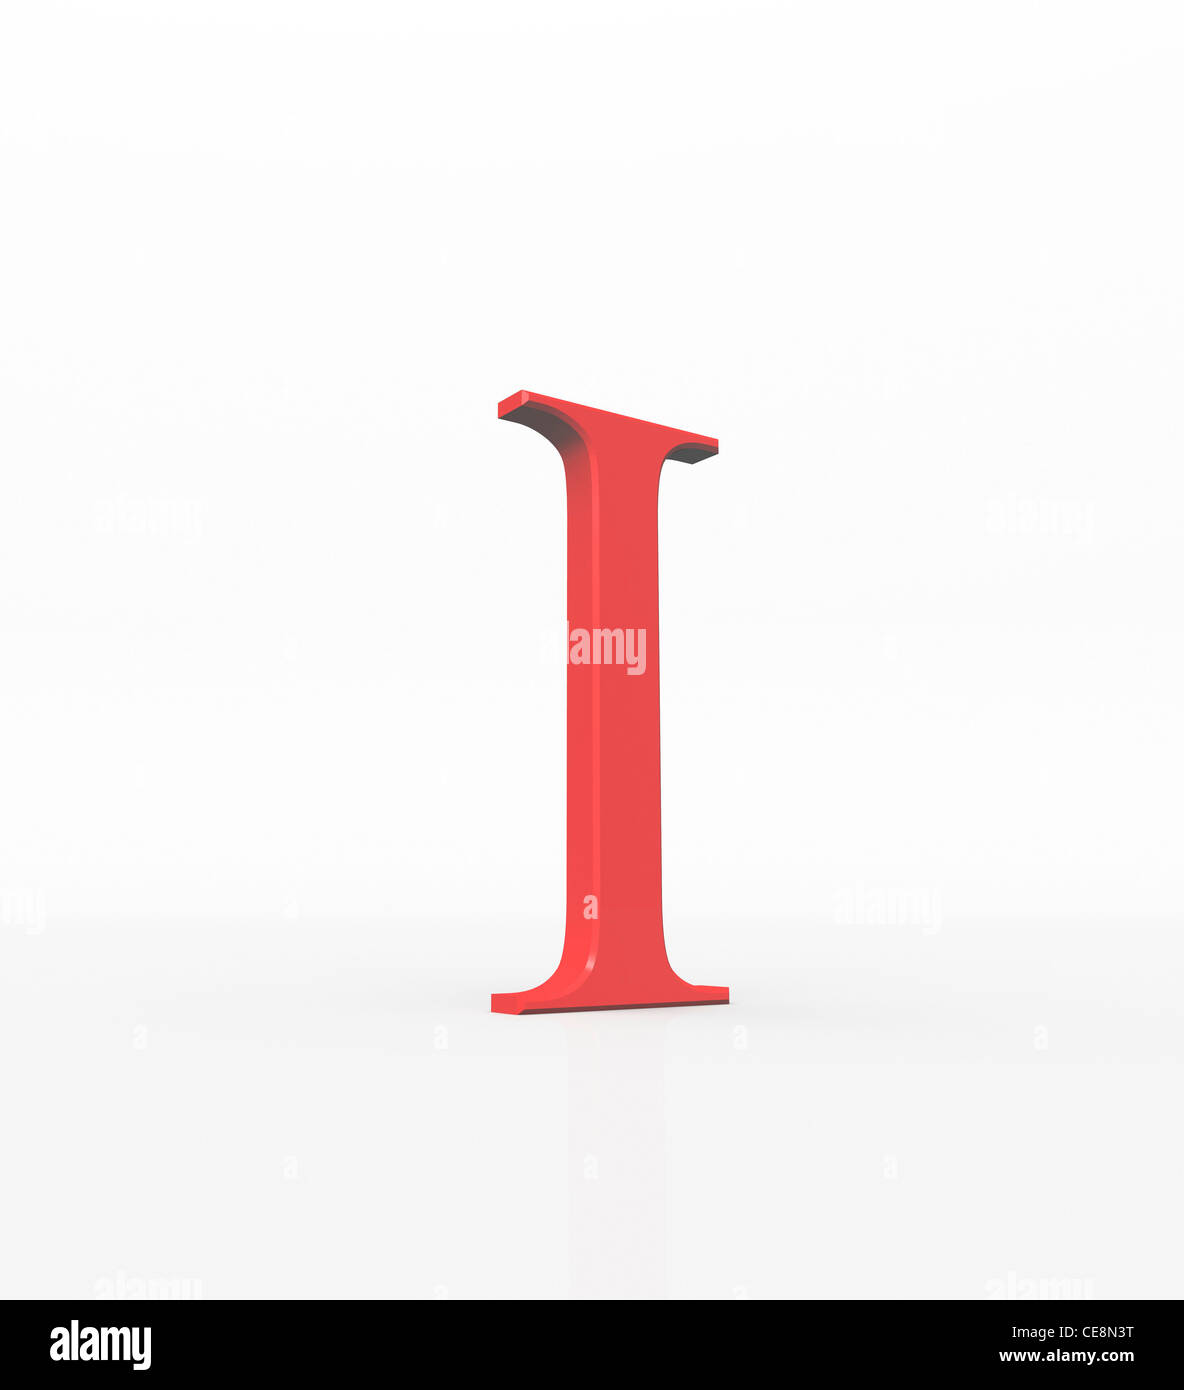 Greek Alphabet Stock Photos & Greek Alphabet Stock Images - Alamy